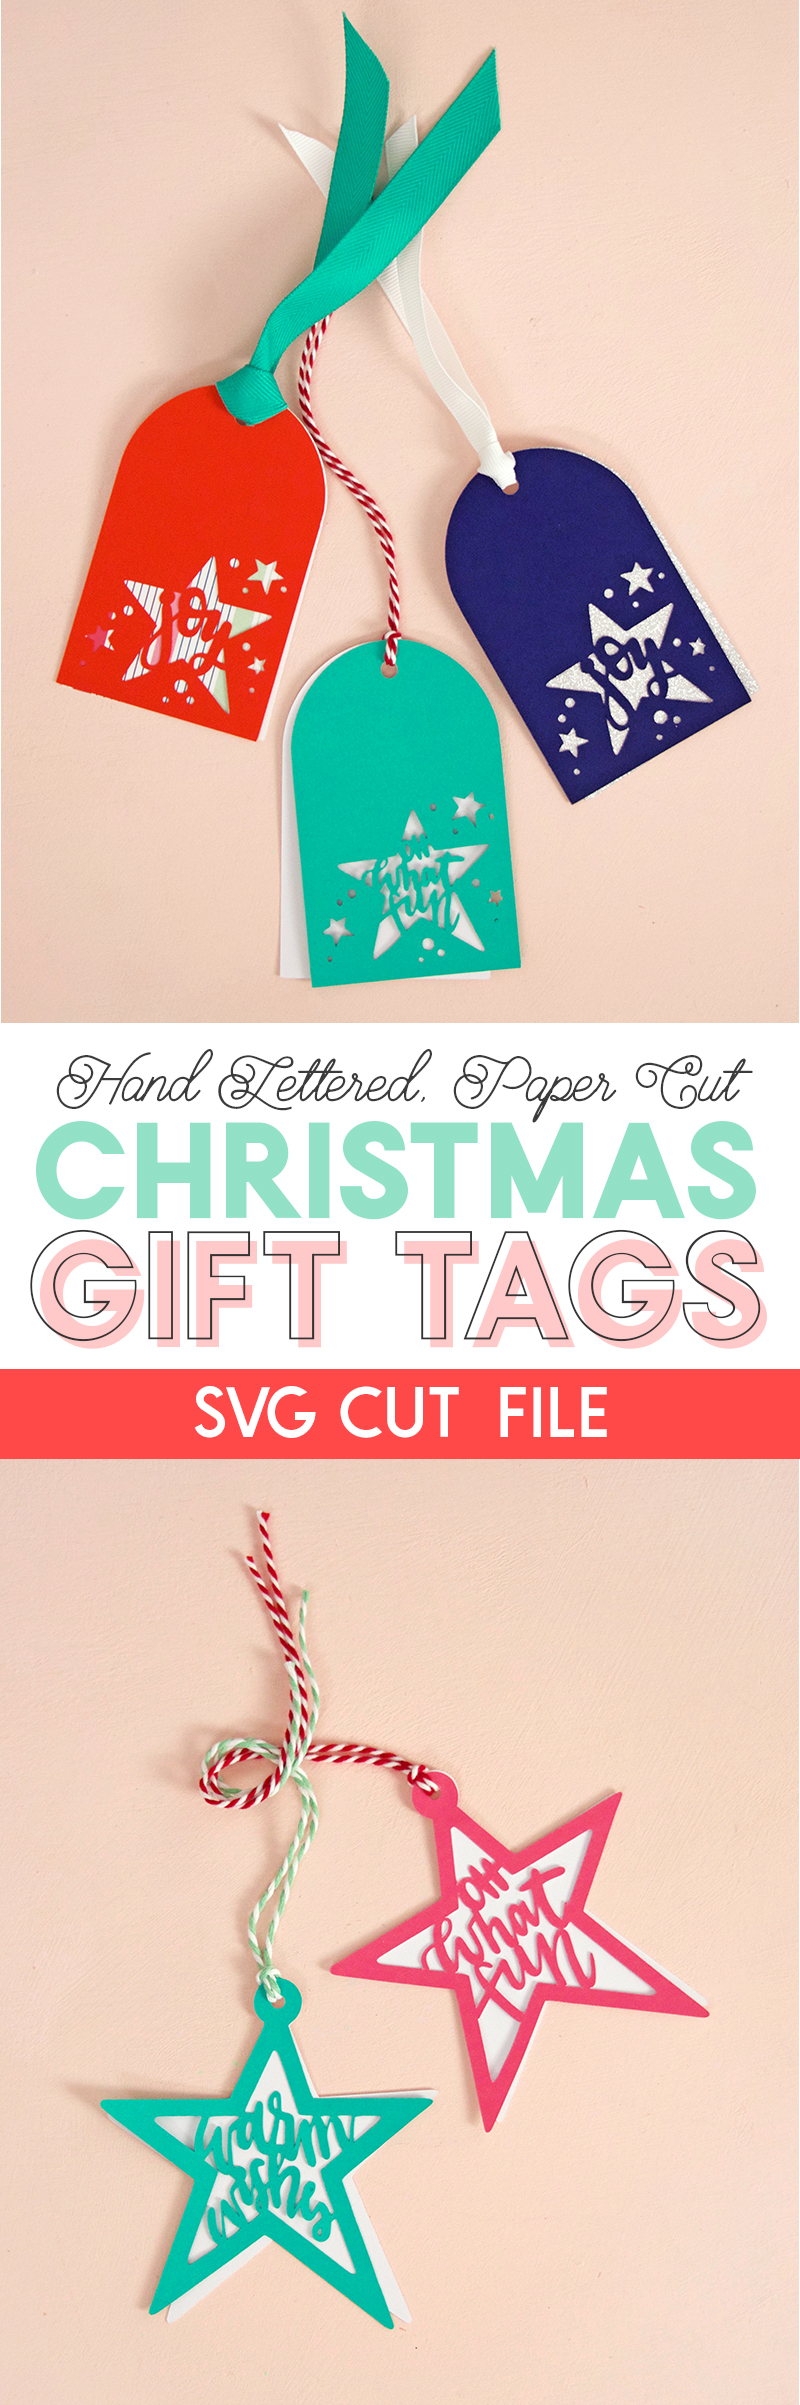 paper cut christmas gift tags - svg cut file - make your own tags with your silhouette or cricut